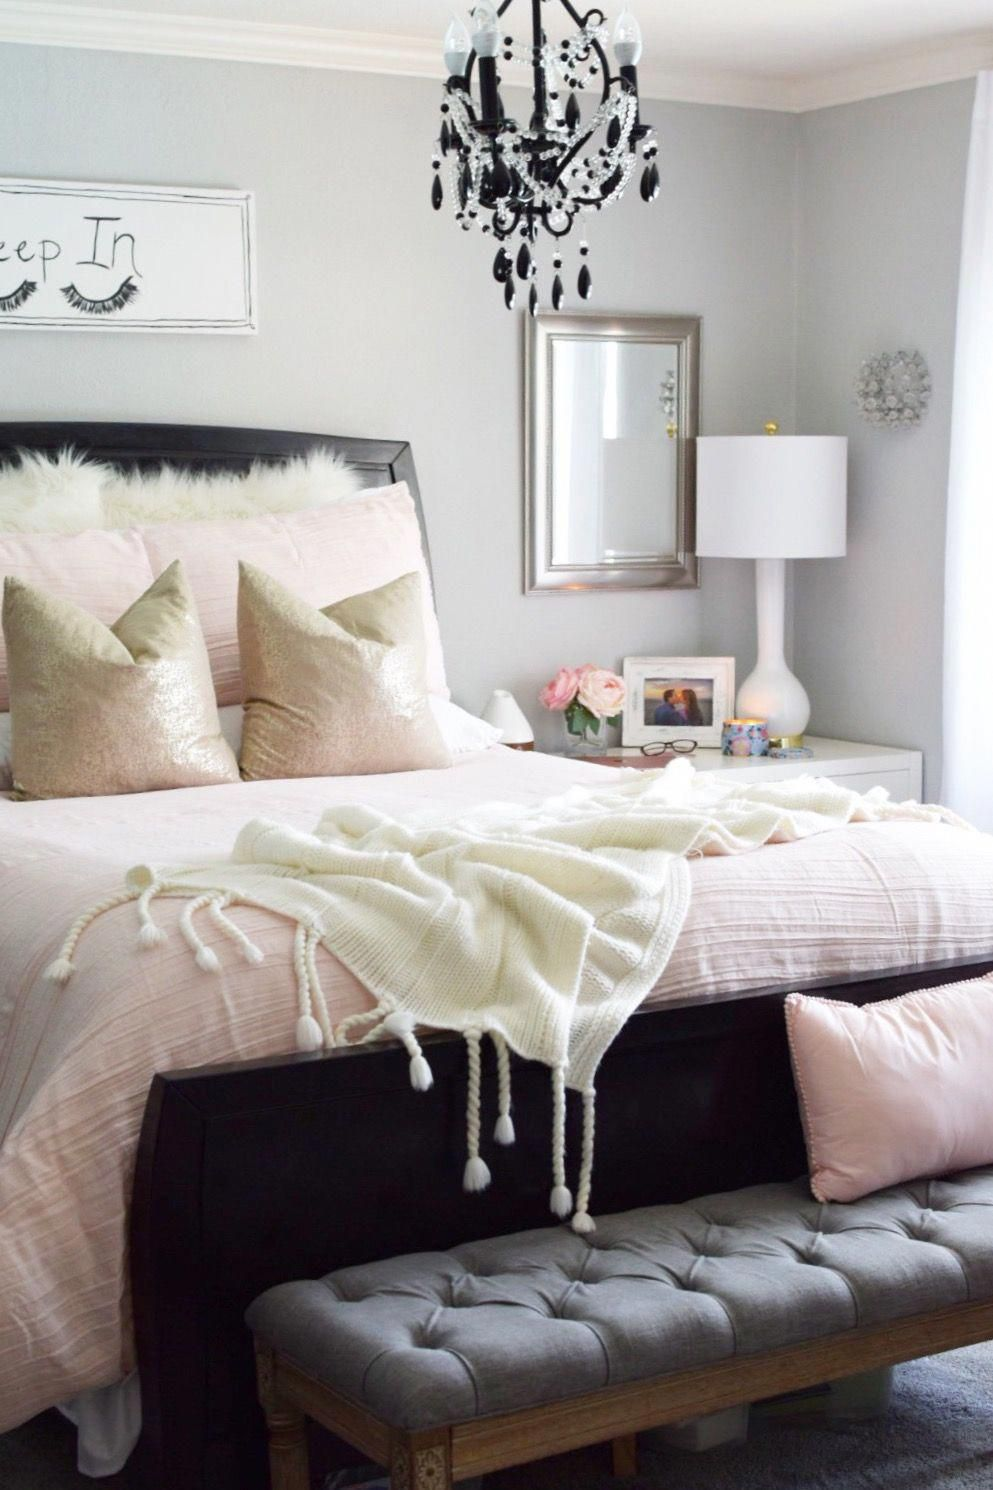 Treat yourself to a bedroom refresh for